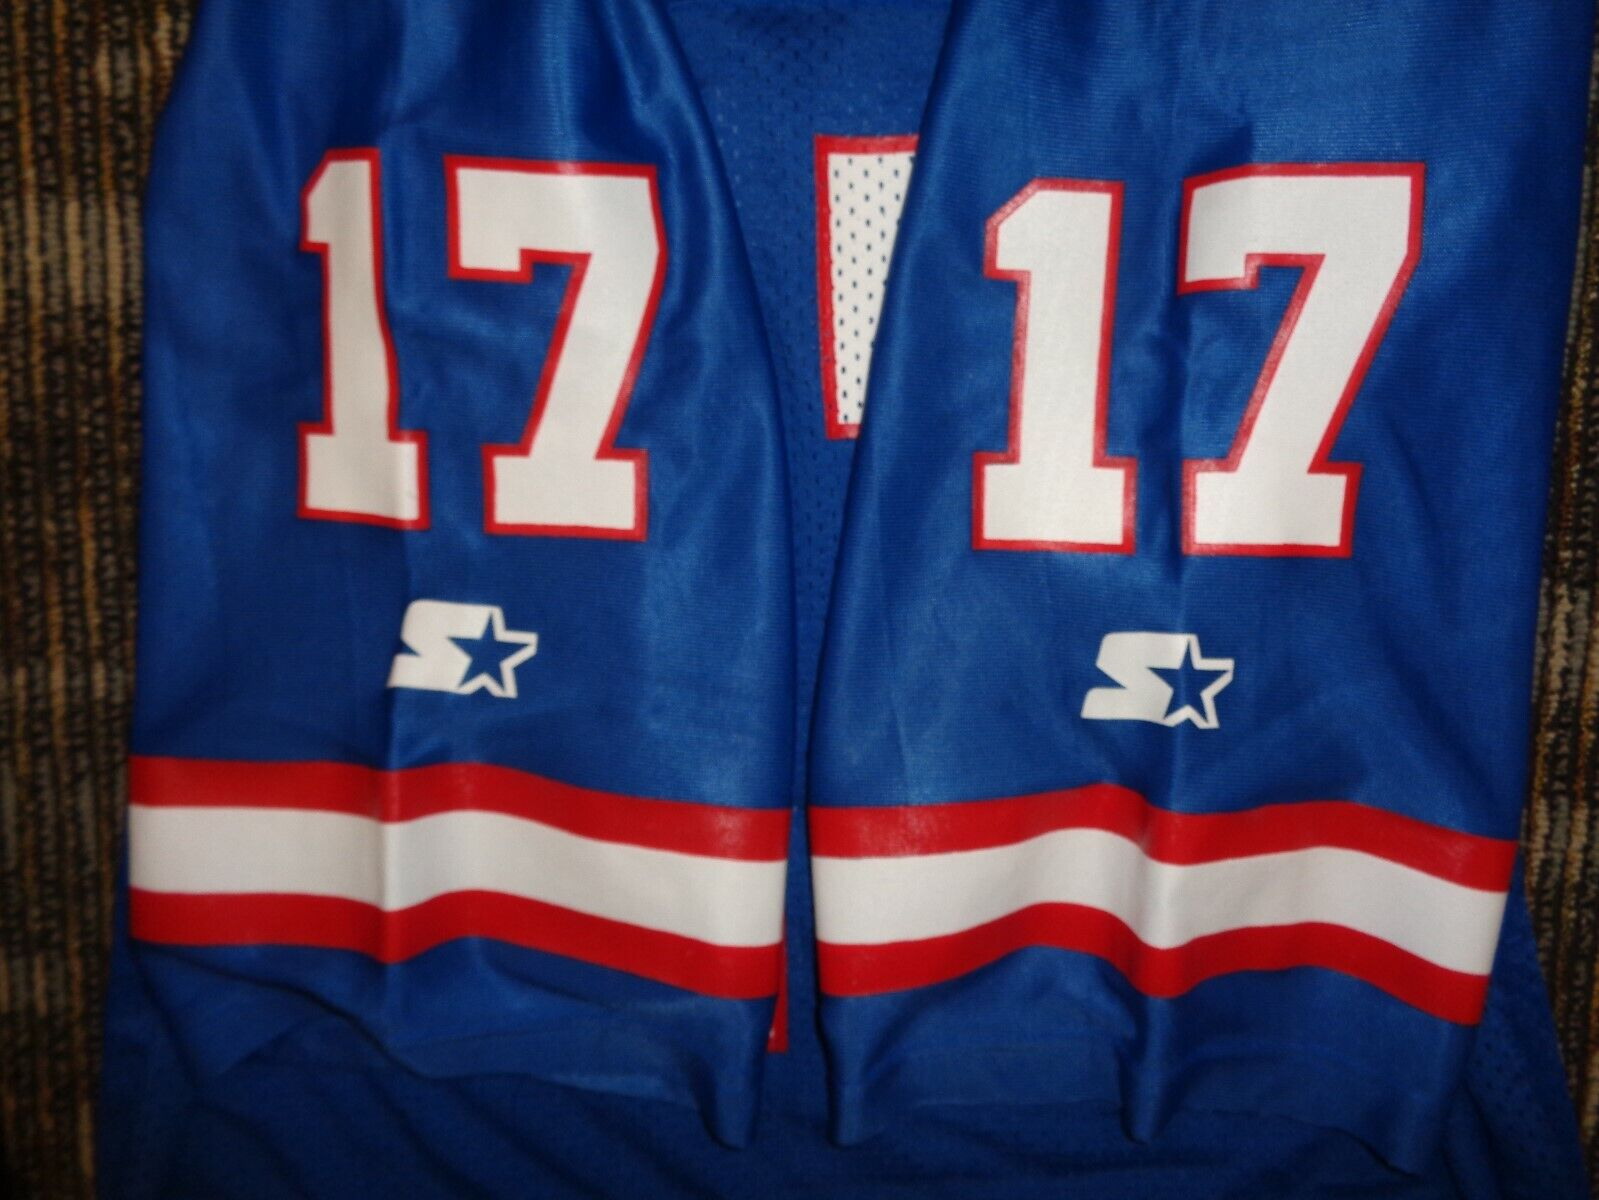 PRISTINE DAVE BROWN 17 NY NEW YORK GIANTS STARTER MENS NFL GAME FOOTBALL JERSEY - $29.99